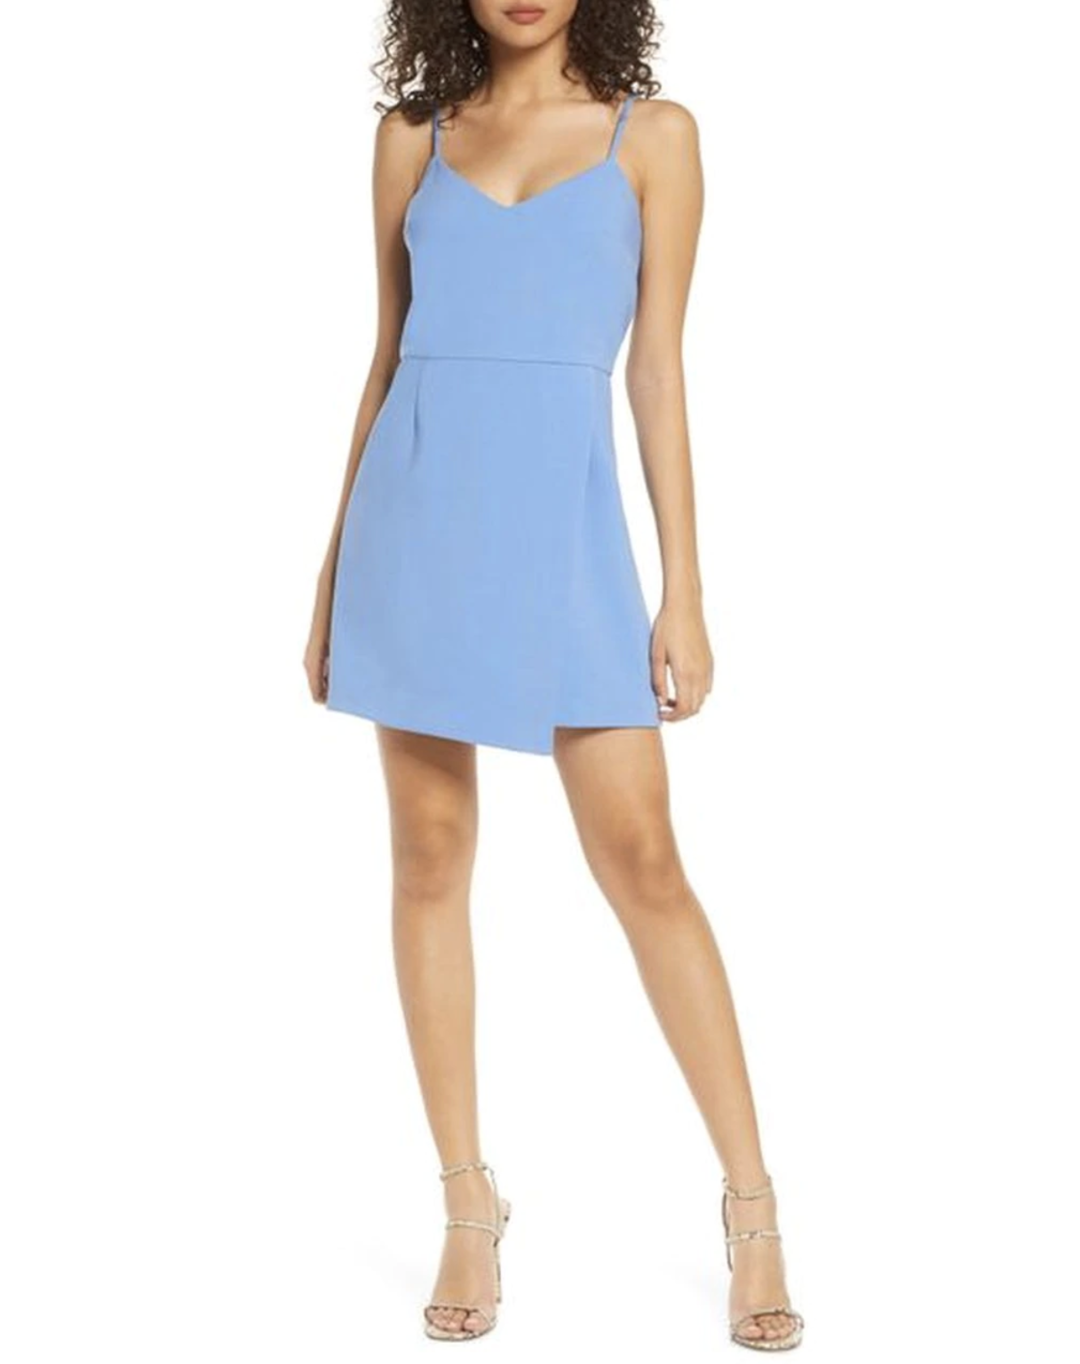 French Connection Demi Dress - Chalk Blue